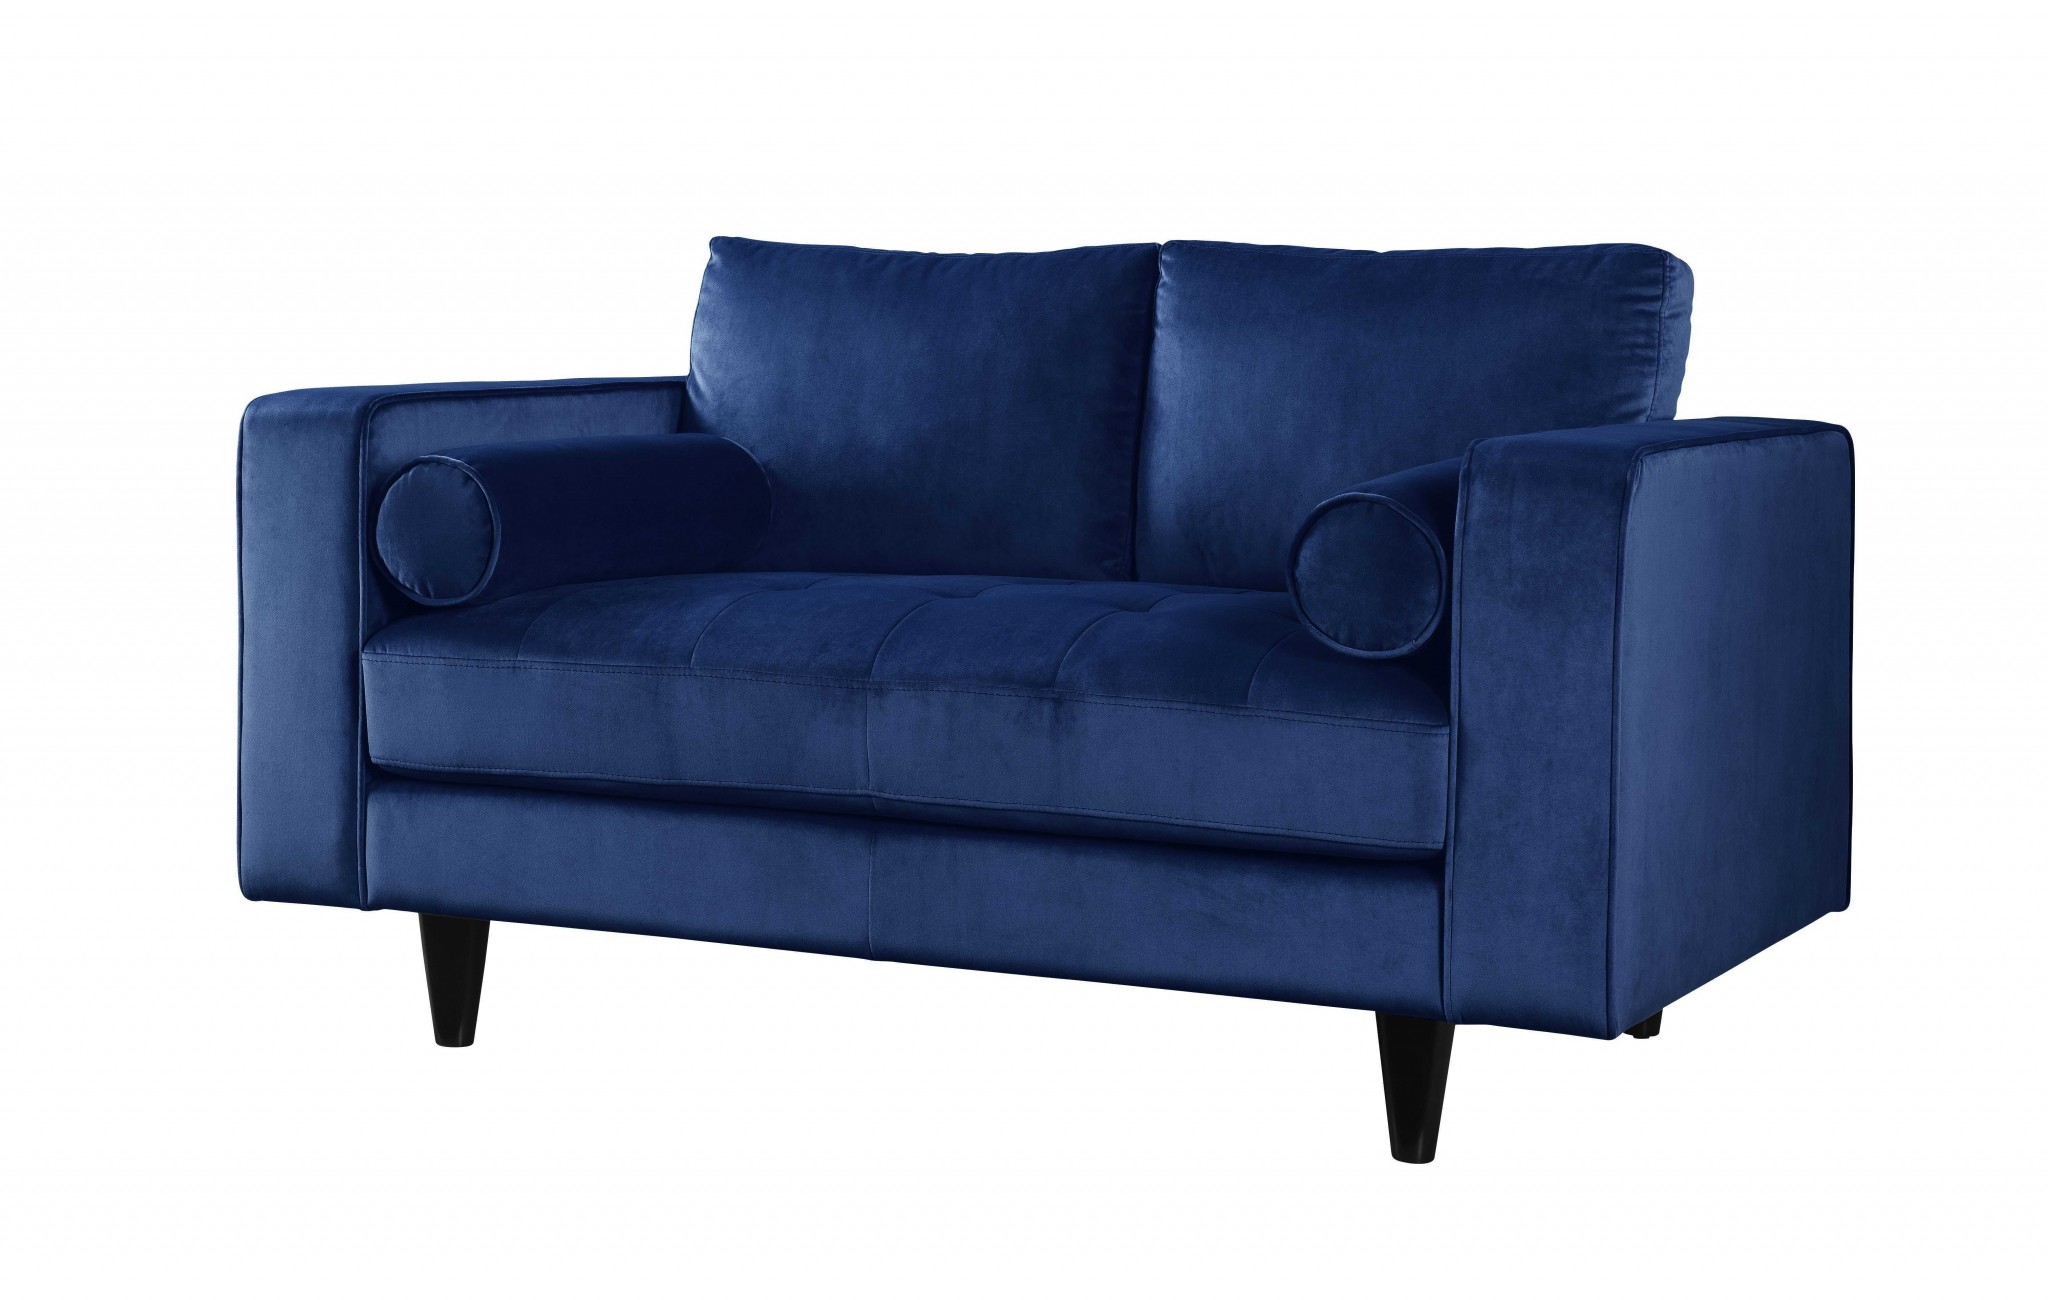 Stupendous 60 X 38 X 35 Navy Velvet Loveseat Machost Co Dining Chair Design Ideas Machostcouk